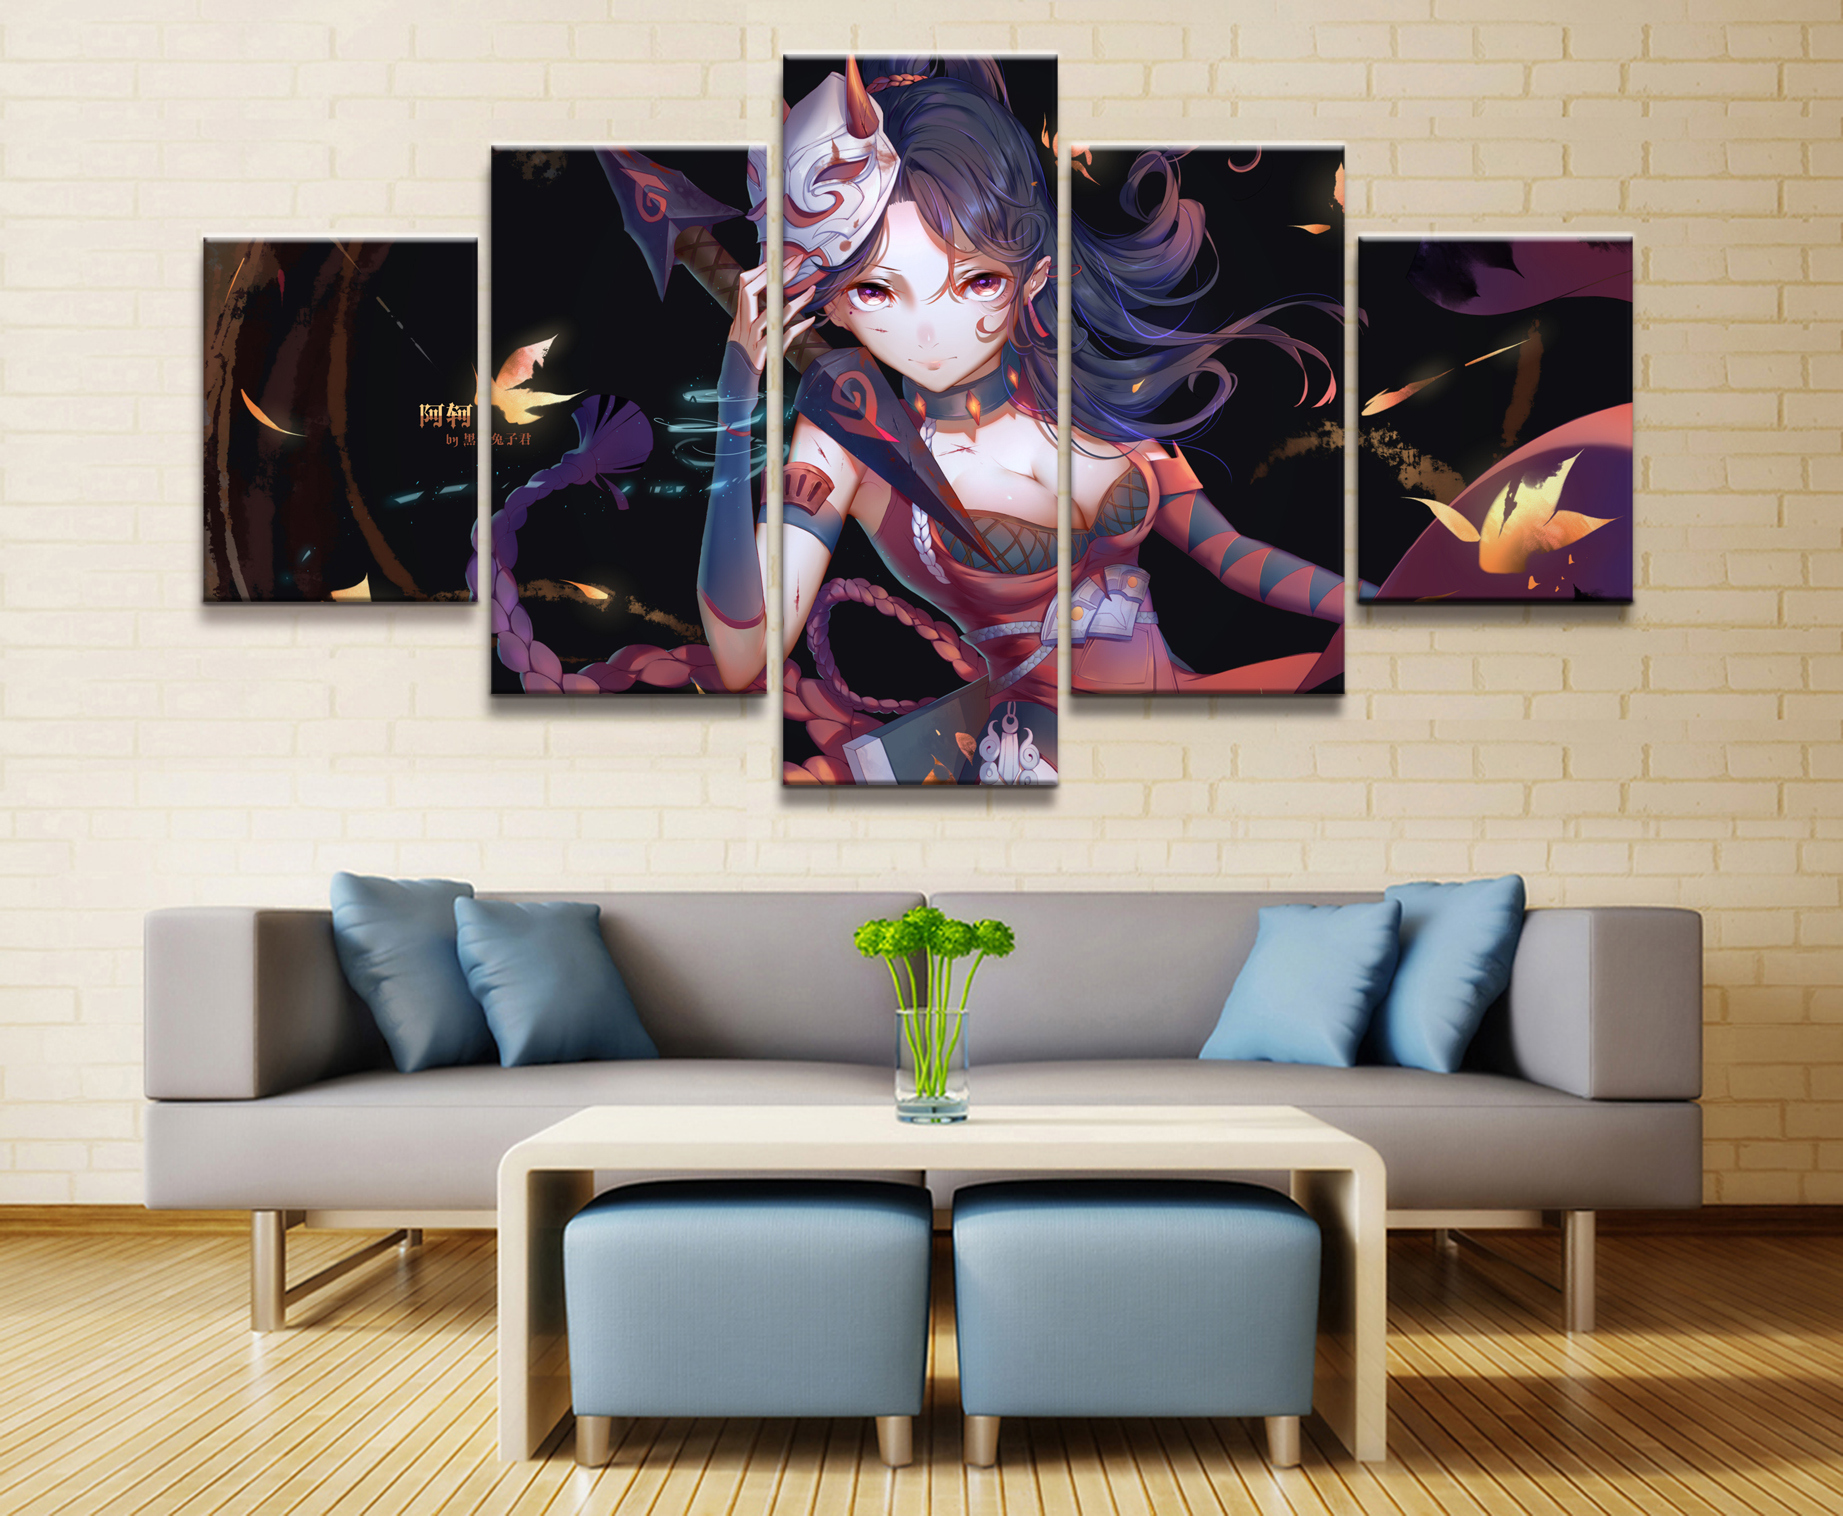 5 Panel Acor 5V5 Arena Of Valor Game Canvas Printed Painting For Living Room Wall Decor HD Picture Artworks Poster in Painting Calligraphy from Home Garden